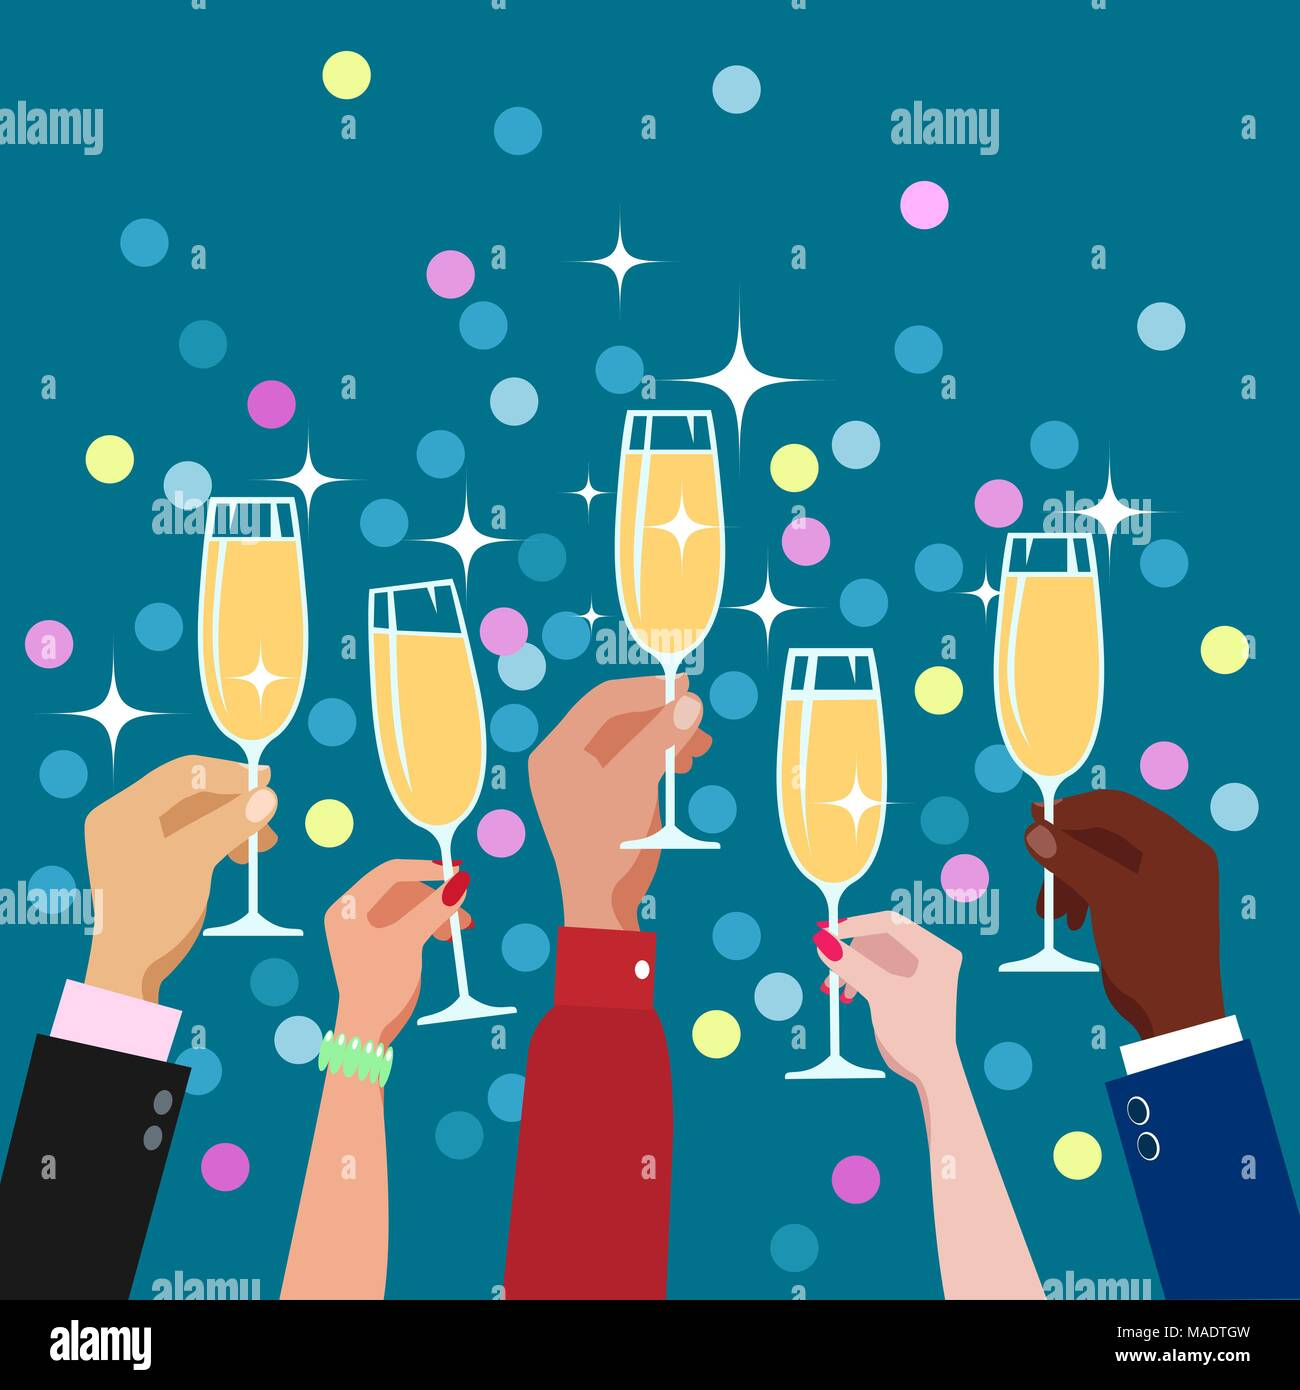 Congratulations, toasts: a selection of news